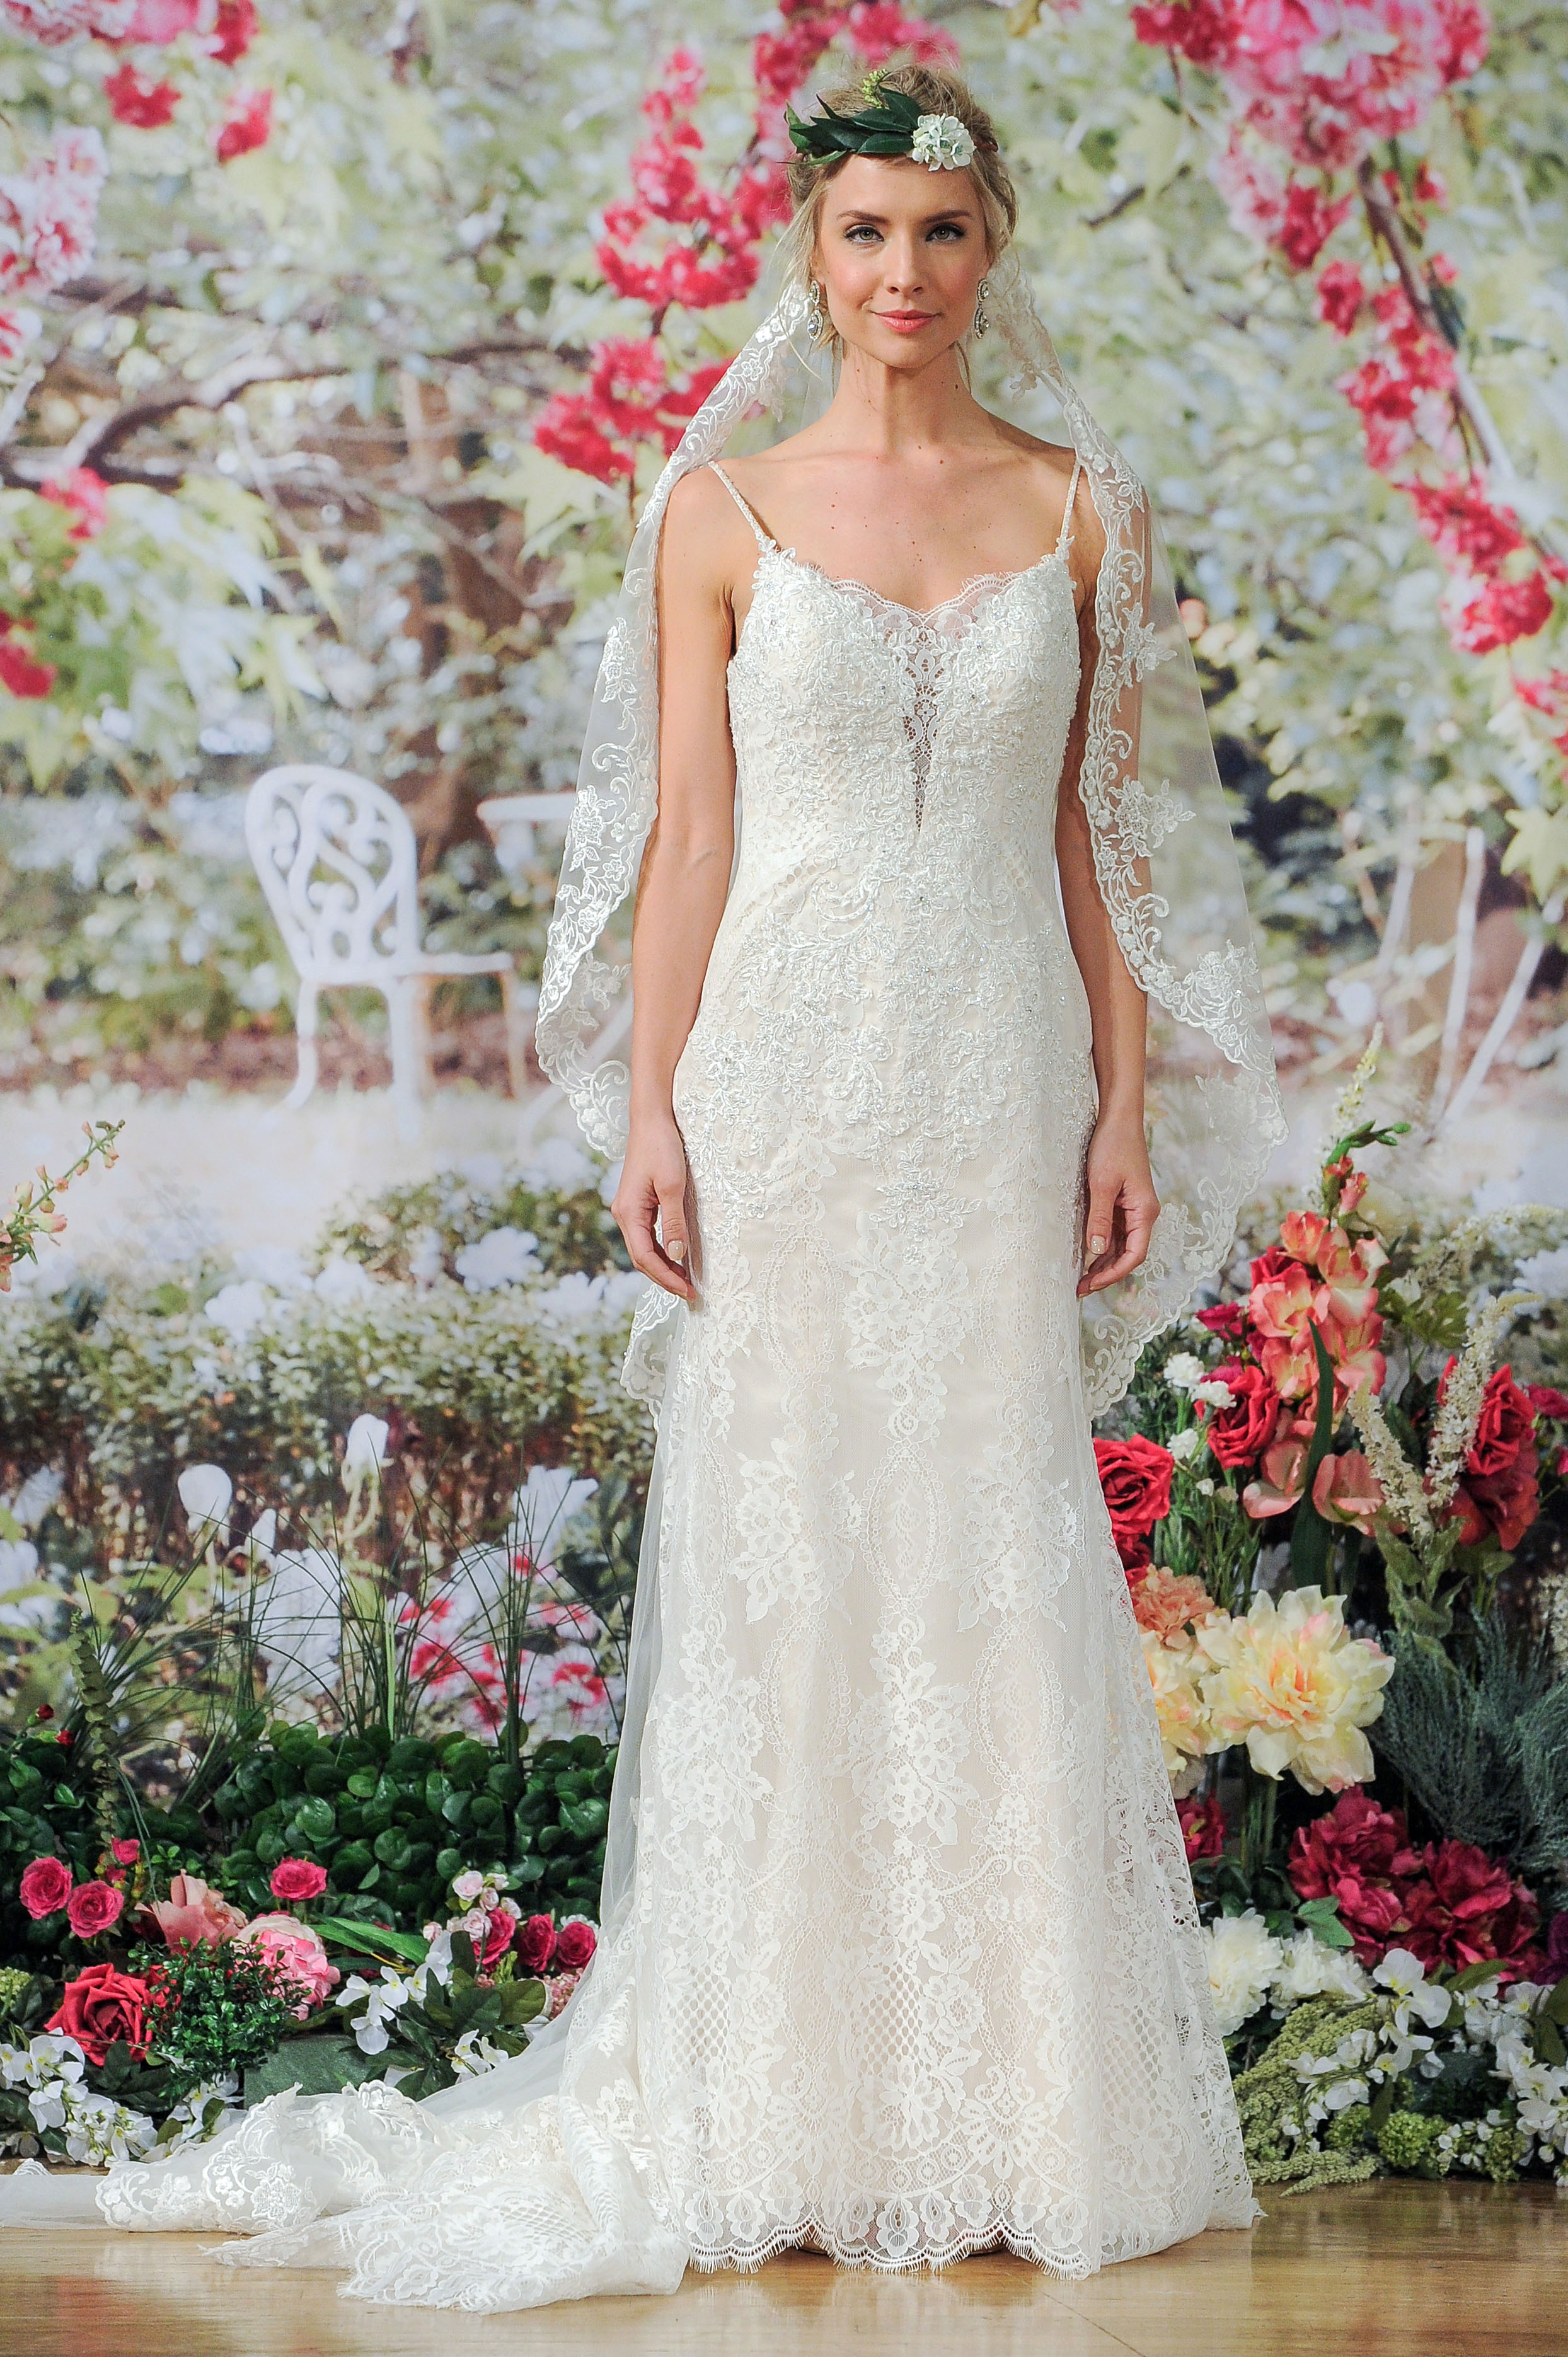 Maggie Sottero Fall 2017 Lace Wedding Dress with Straps